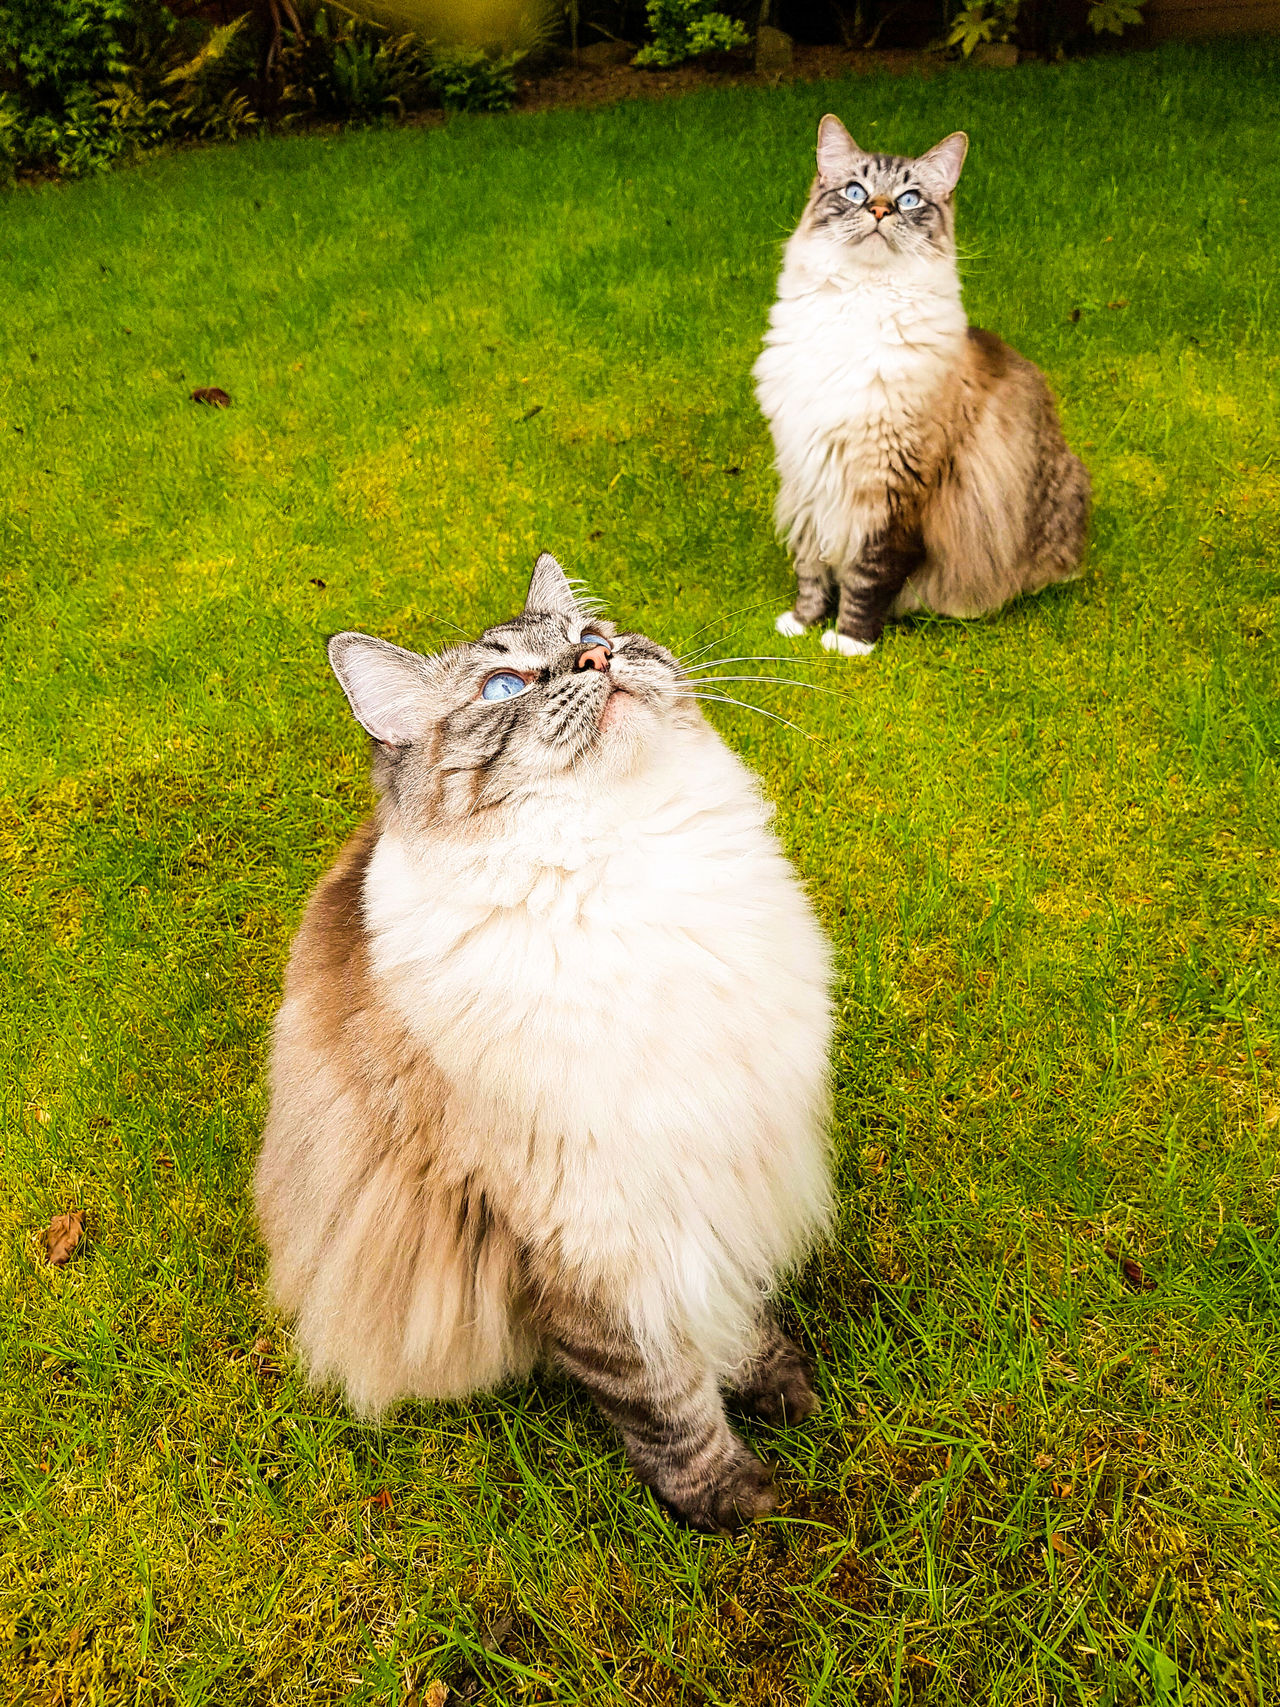 PEDIGREE RAGDOLLS BIRD WATCHING. Grass Animal Themes Mammal Domestic Animals Pets Outdoors Longhaired Cats EyeEmNewHere Samsung Galaxy S7 Edge Expression Funny Faces Bird Watching Catslife Chillin Out At Home Pedigreecats Garden Playtime Ragdoll Cat Outdoor Pictures